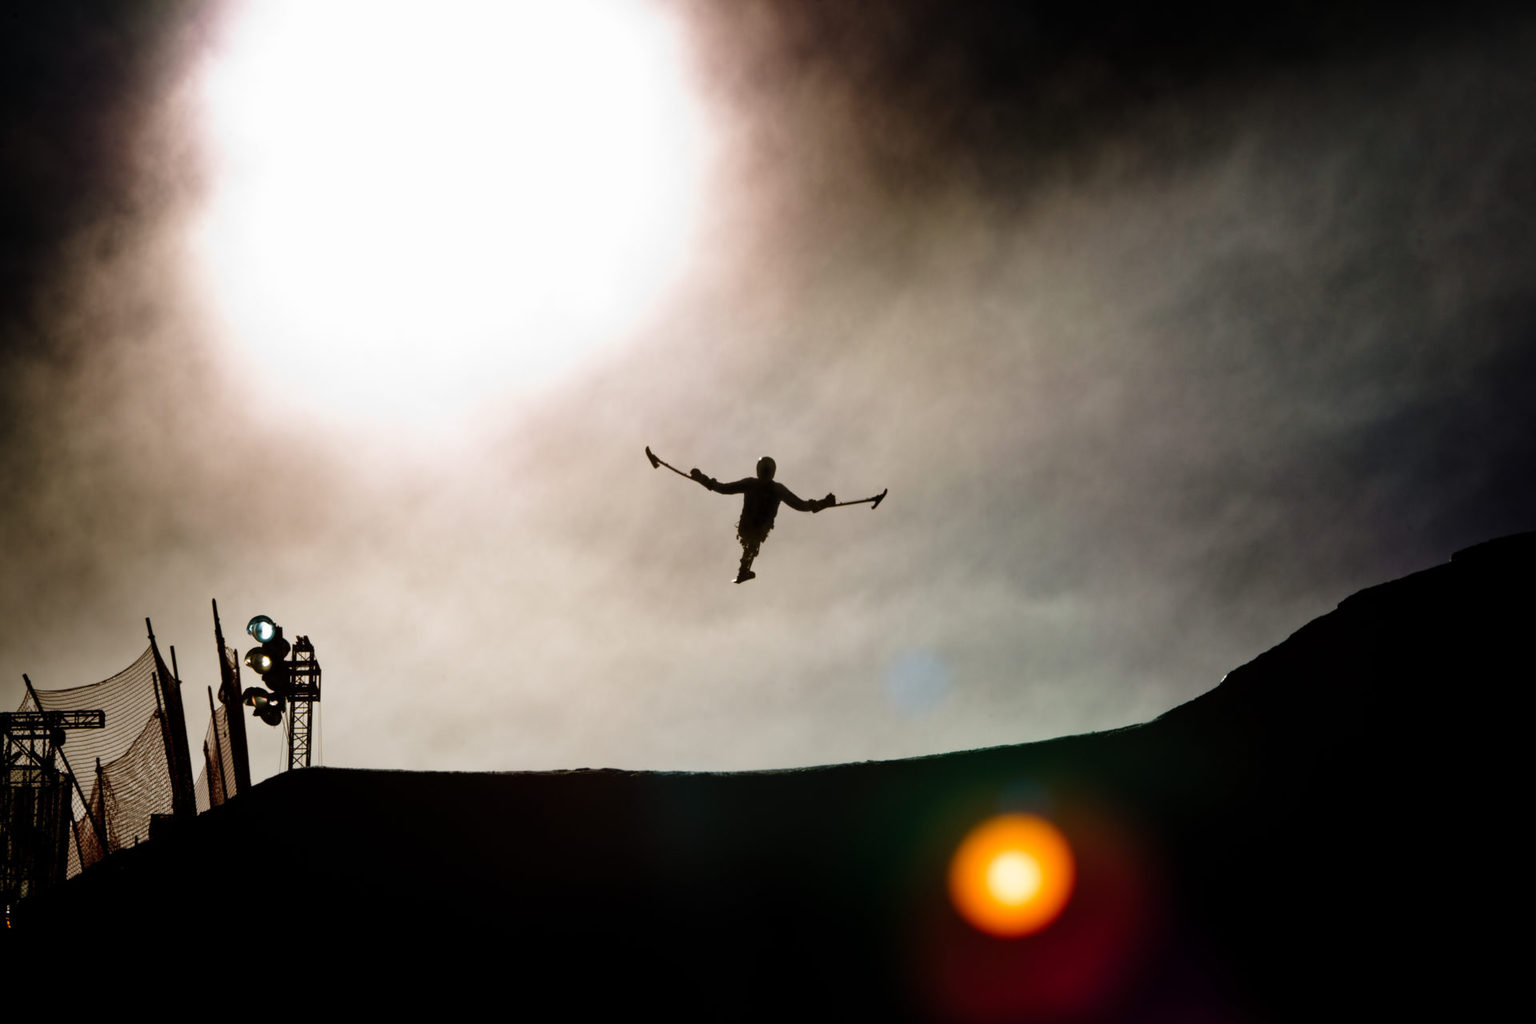 Josh Dueck: Backflipping Adaptive Skier